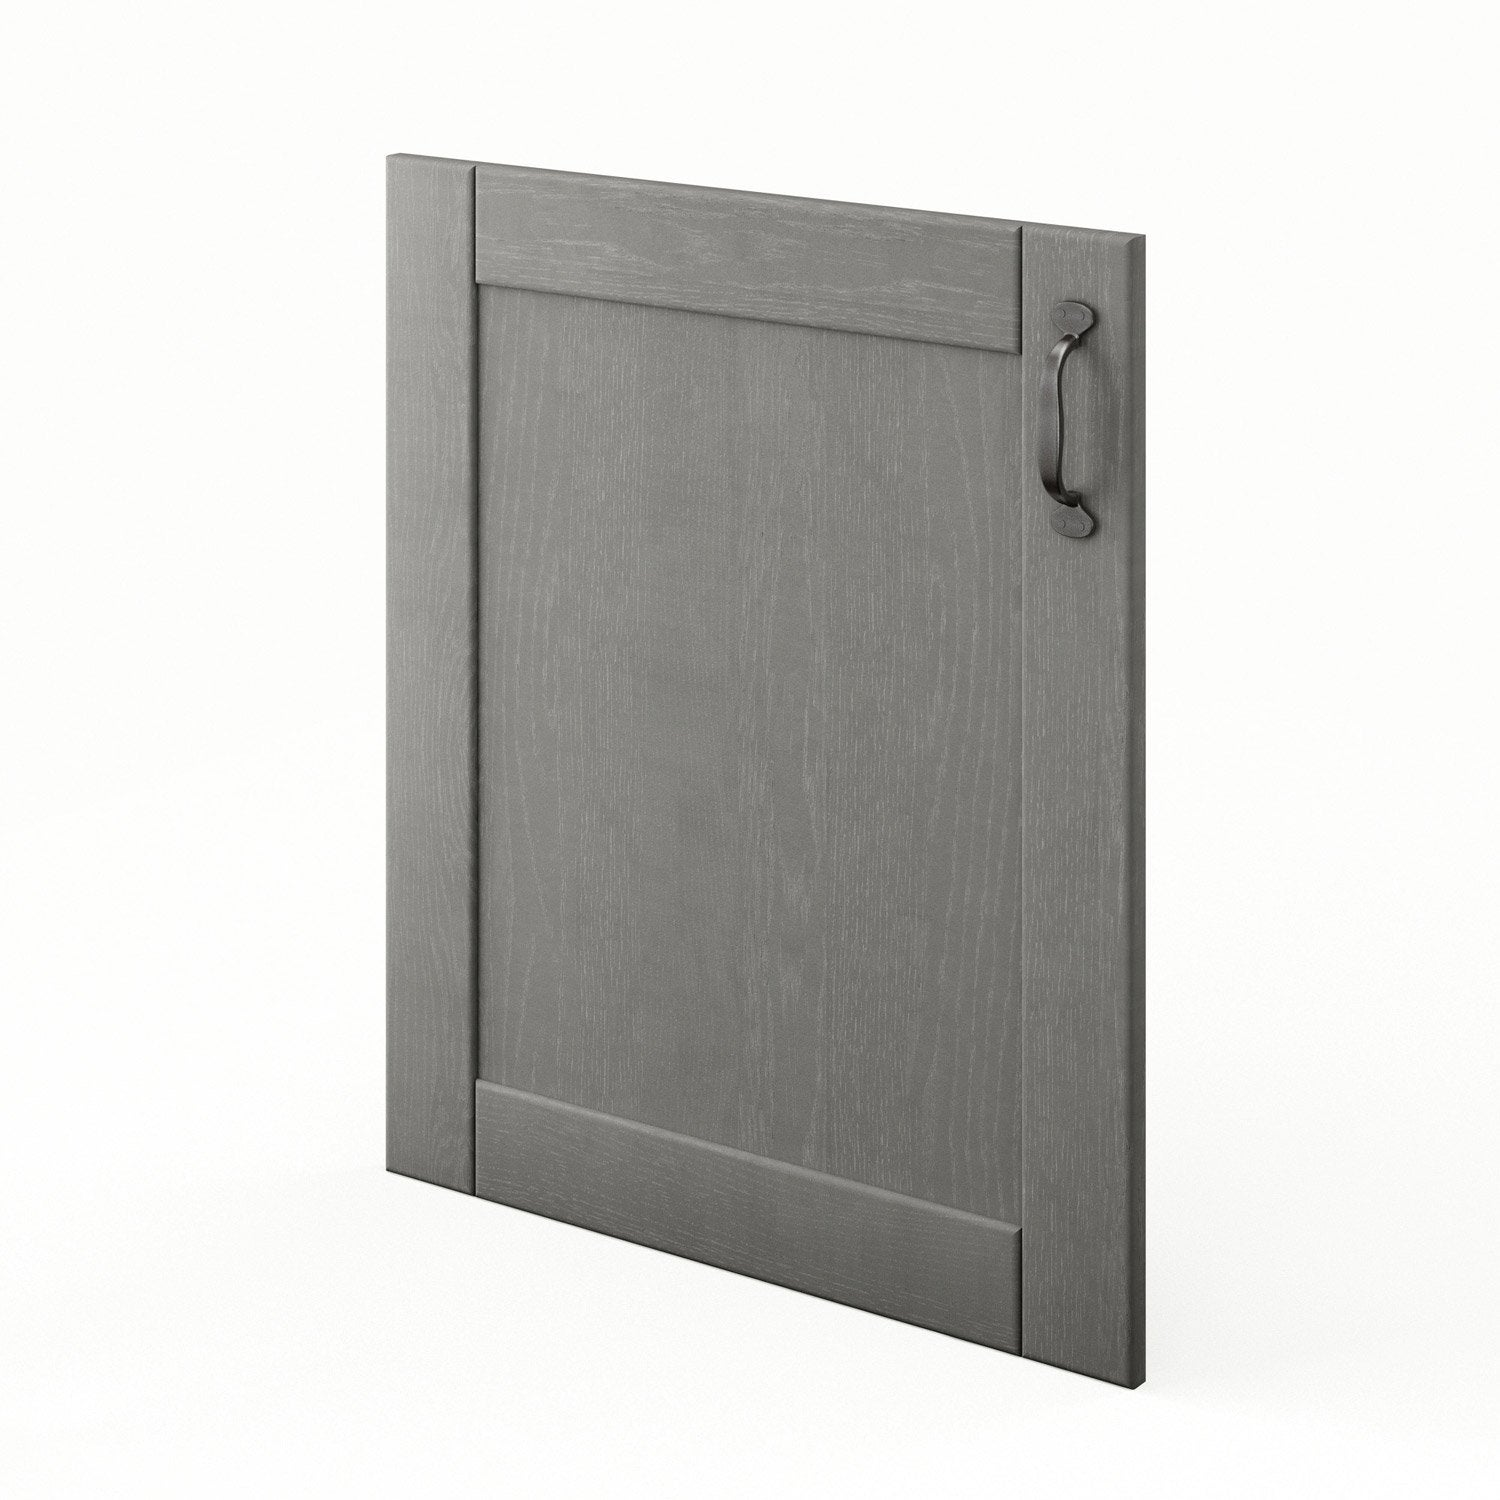 Porte de cuisine gris shadow x cm leroy merlin for Porte 60 x 50